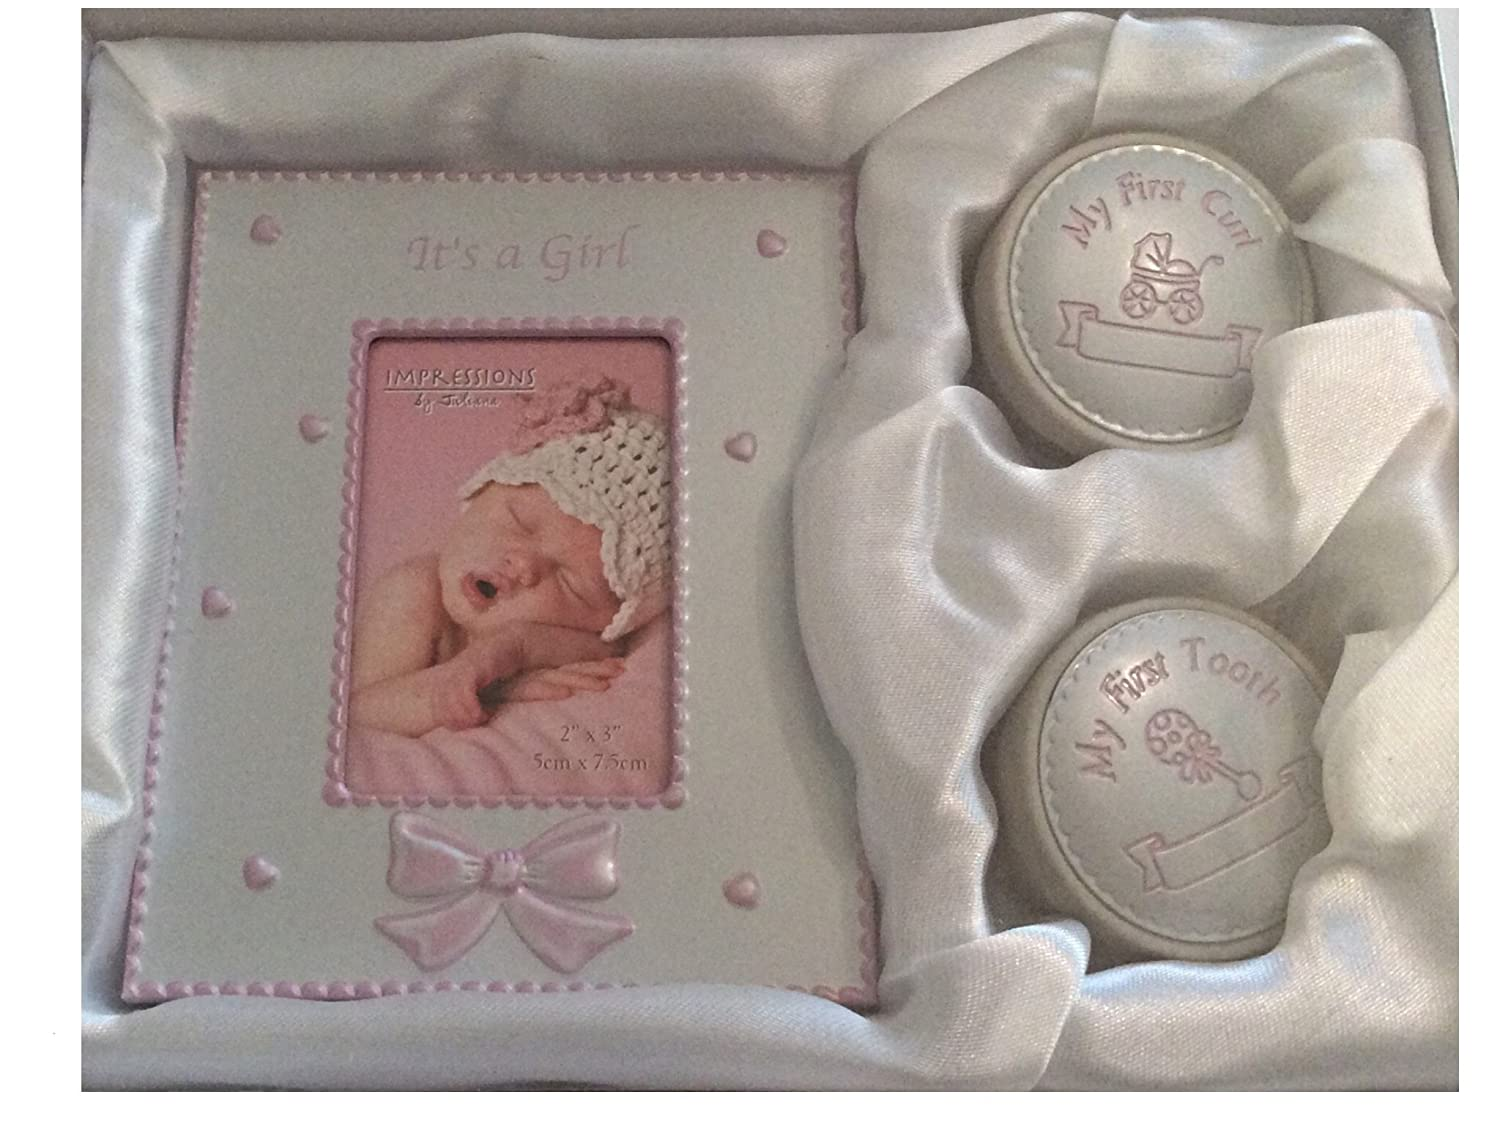 Pink PHOTO FRAME WITH FIRST CURL AND FIRST TOOTH BOXES BABY GIFT SET